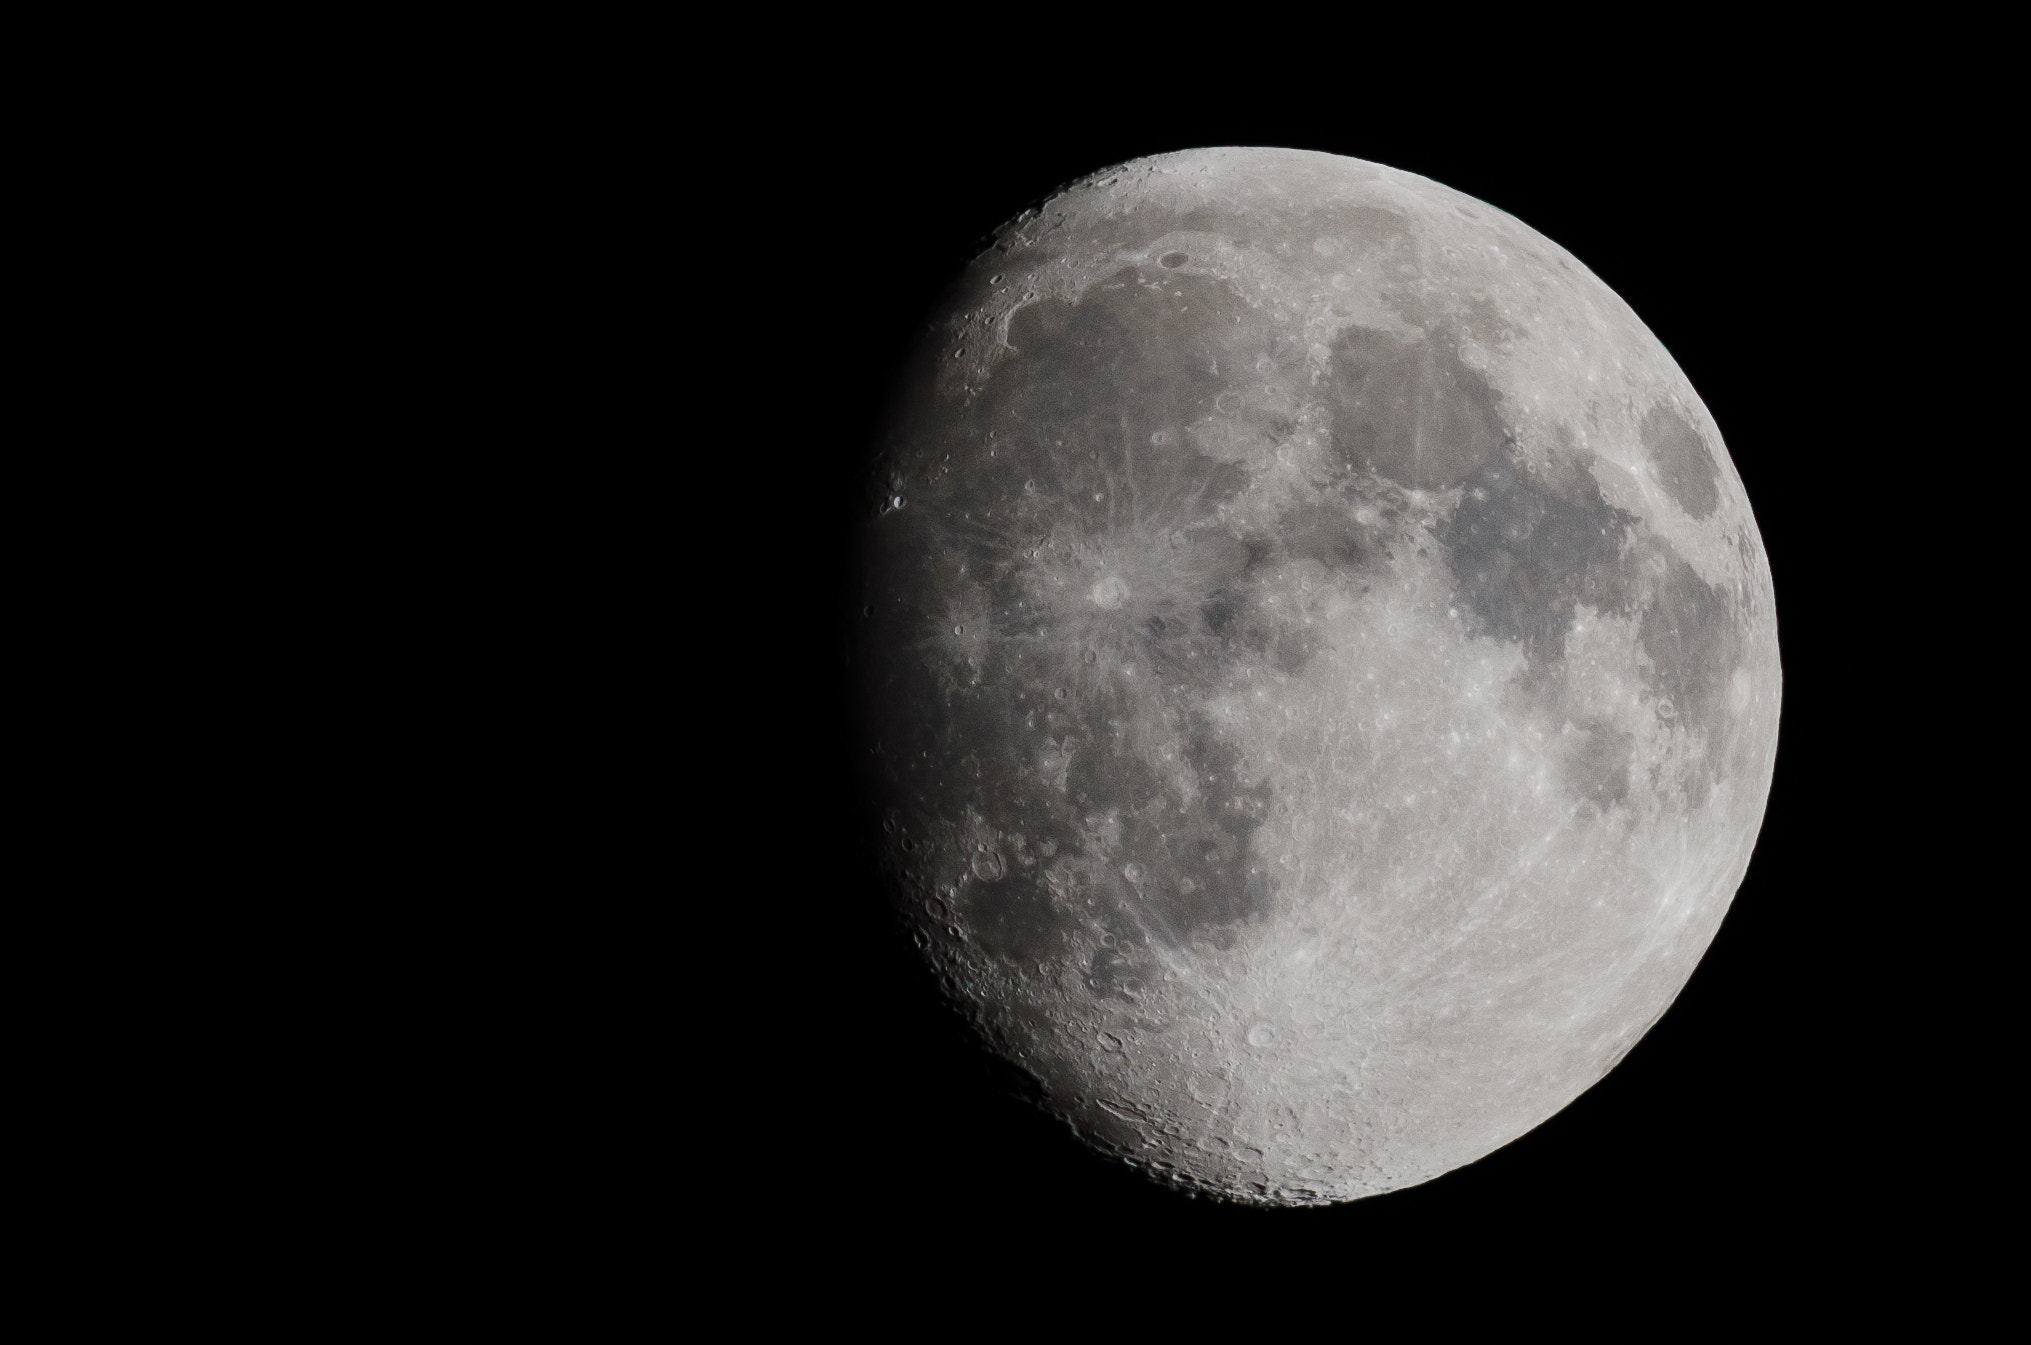 Photograph Moon by Ingo Scholtes on 500px